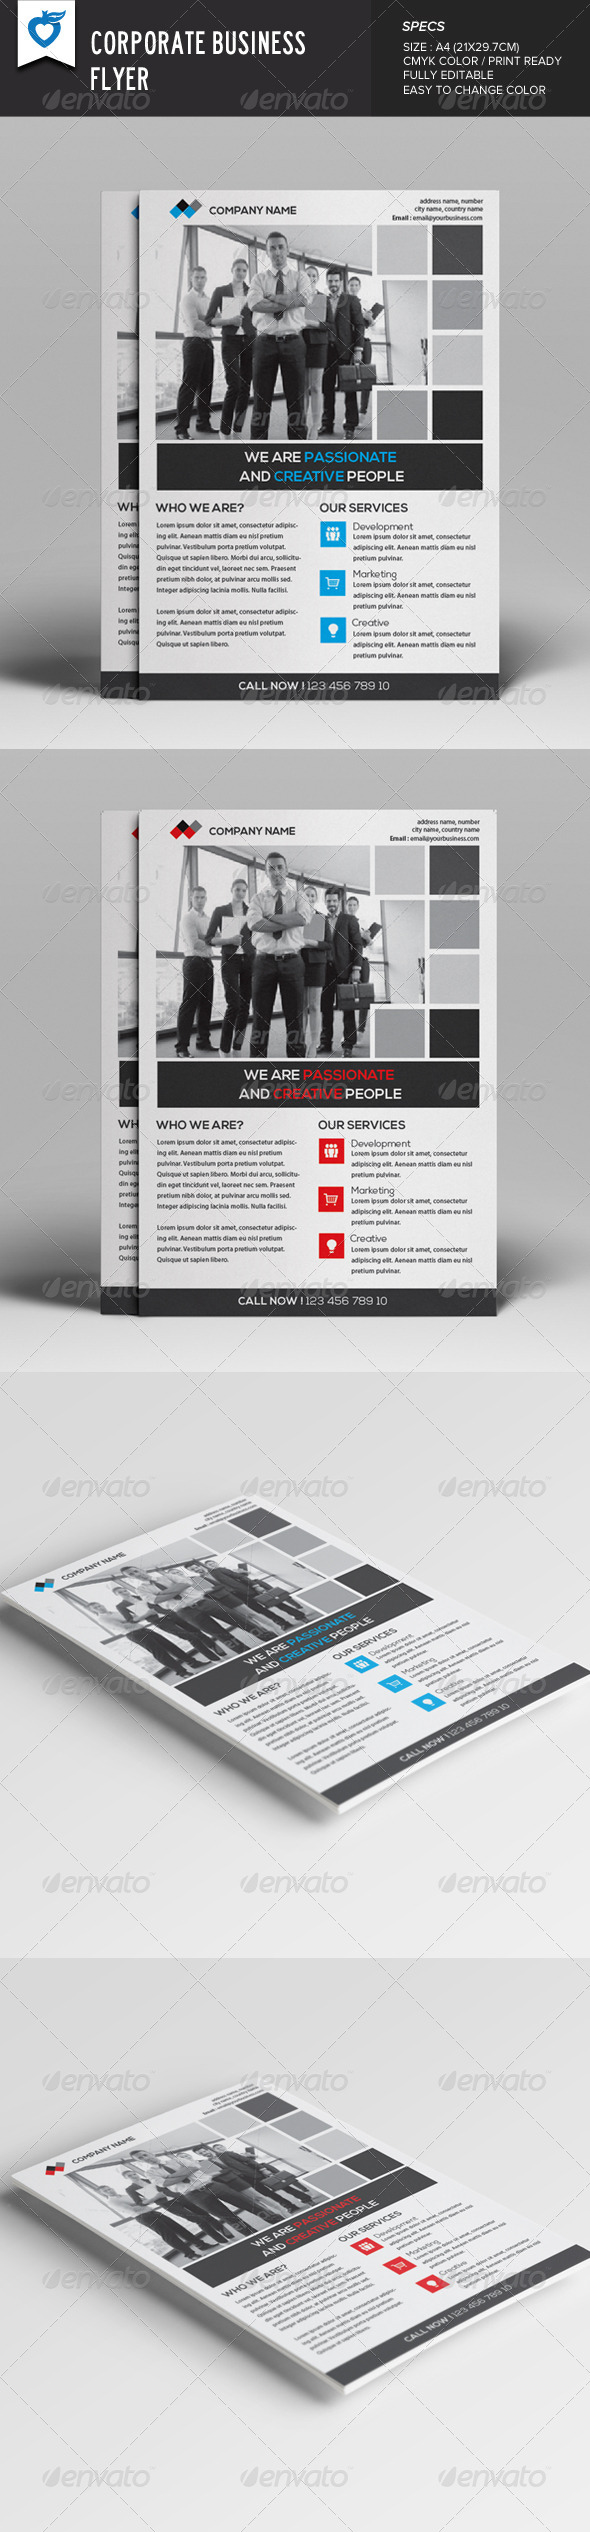 GraphicRiver Corporate Business Flyer v12 8062481